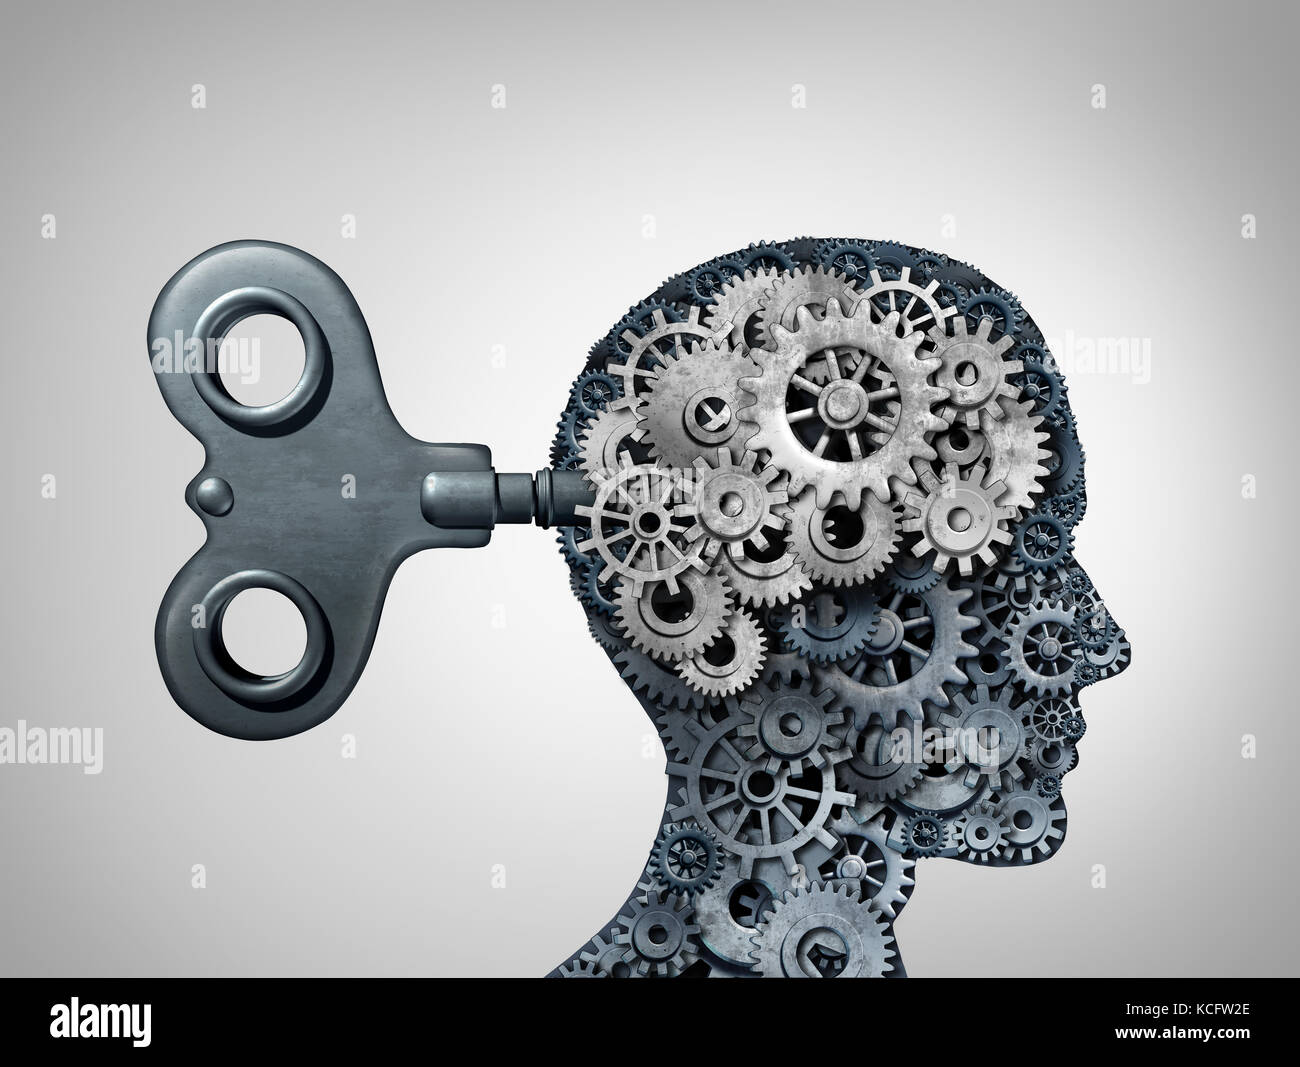 Brain Function Symbol And Psychology Mind As A Human Head